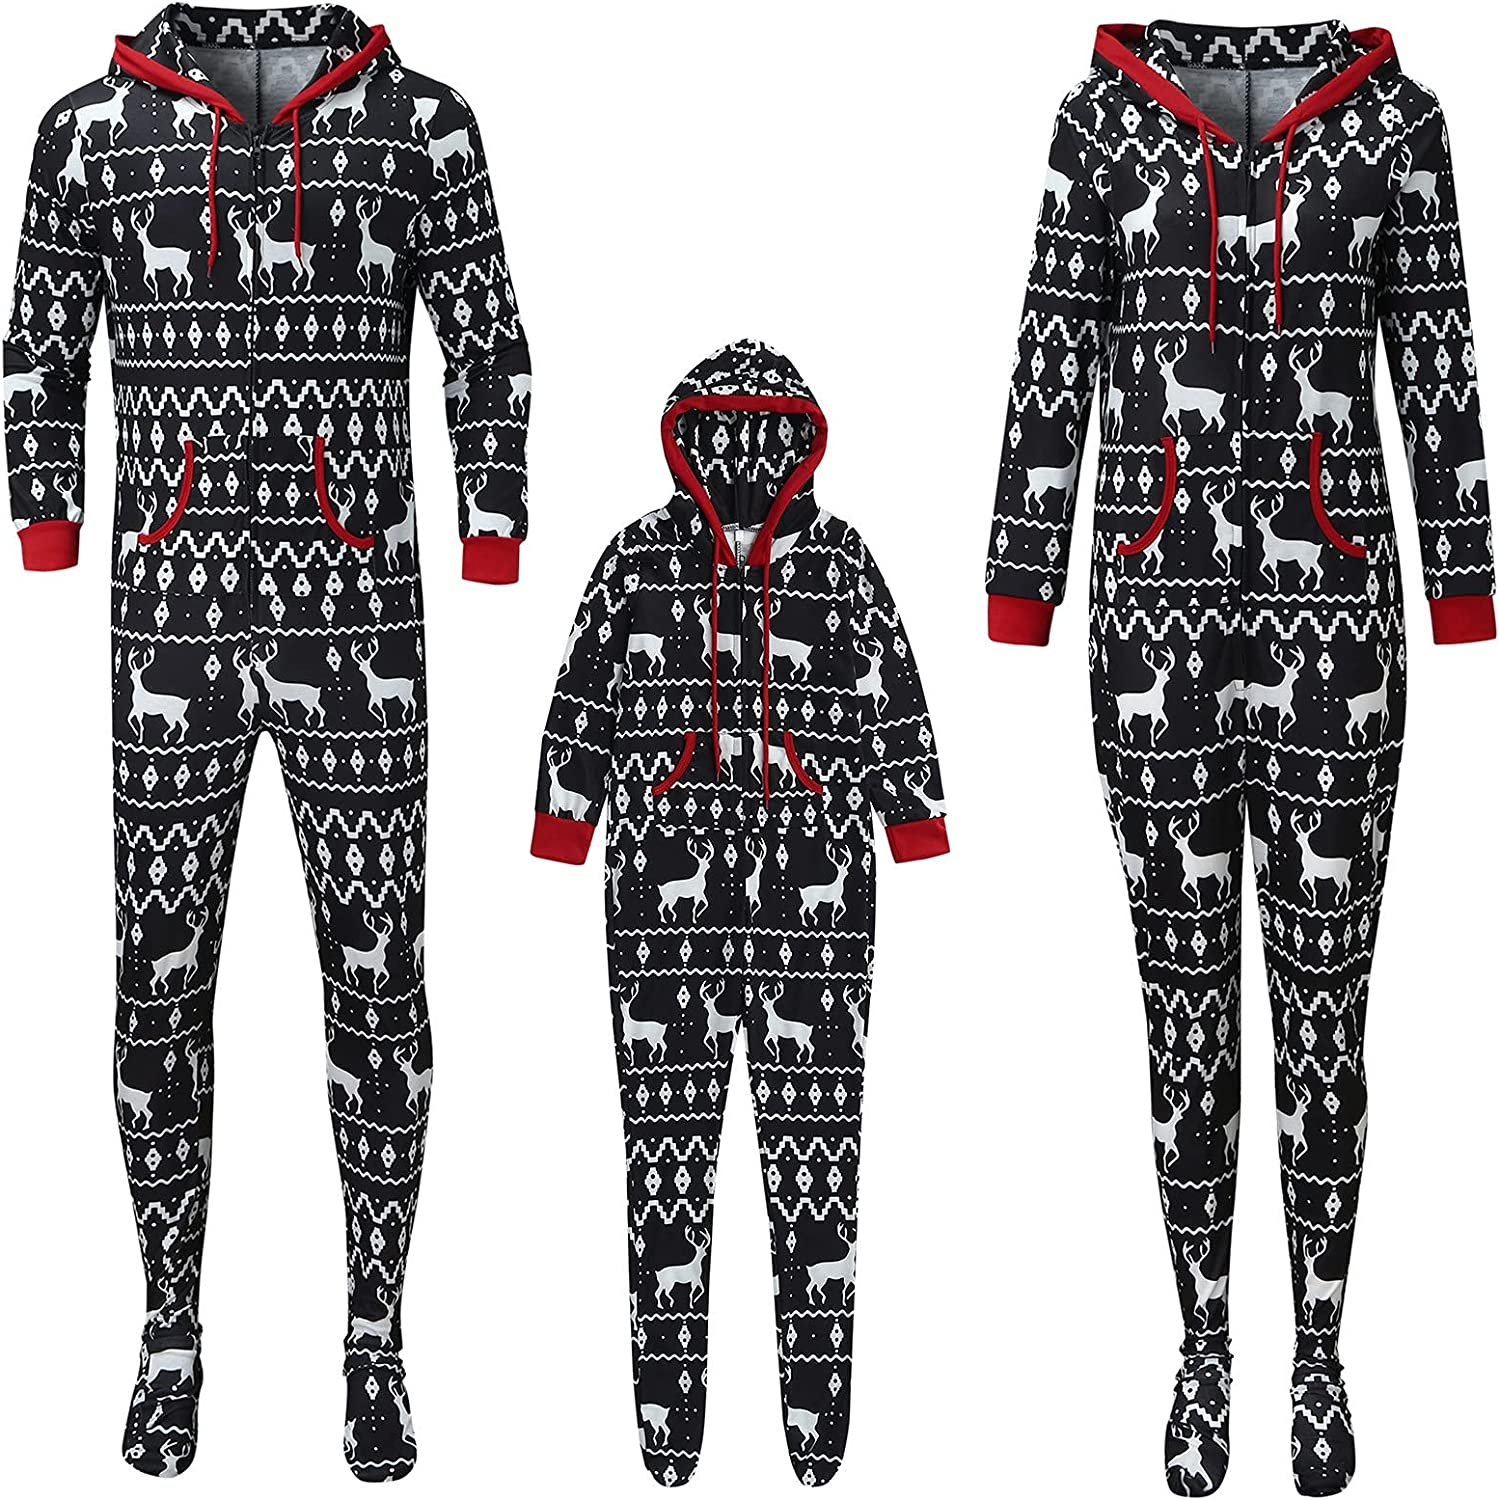 Matching Family Clearance SALE Limited time Pajamas Sets Holiday Christmas PJs wit Max 54% OFF